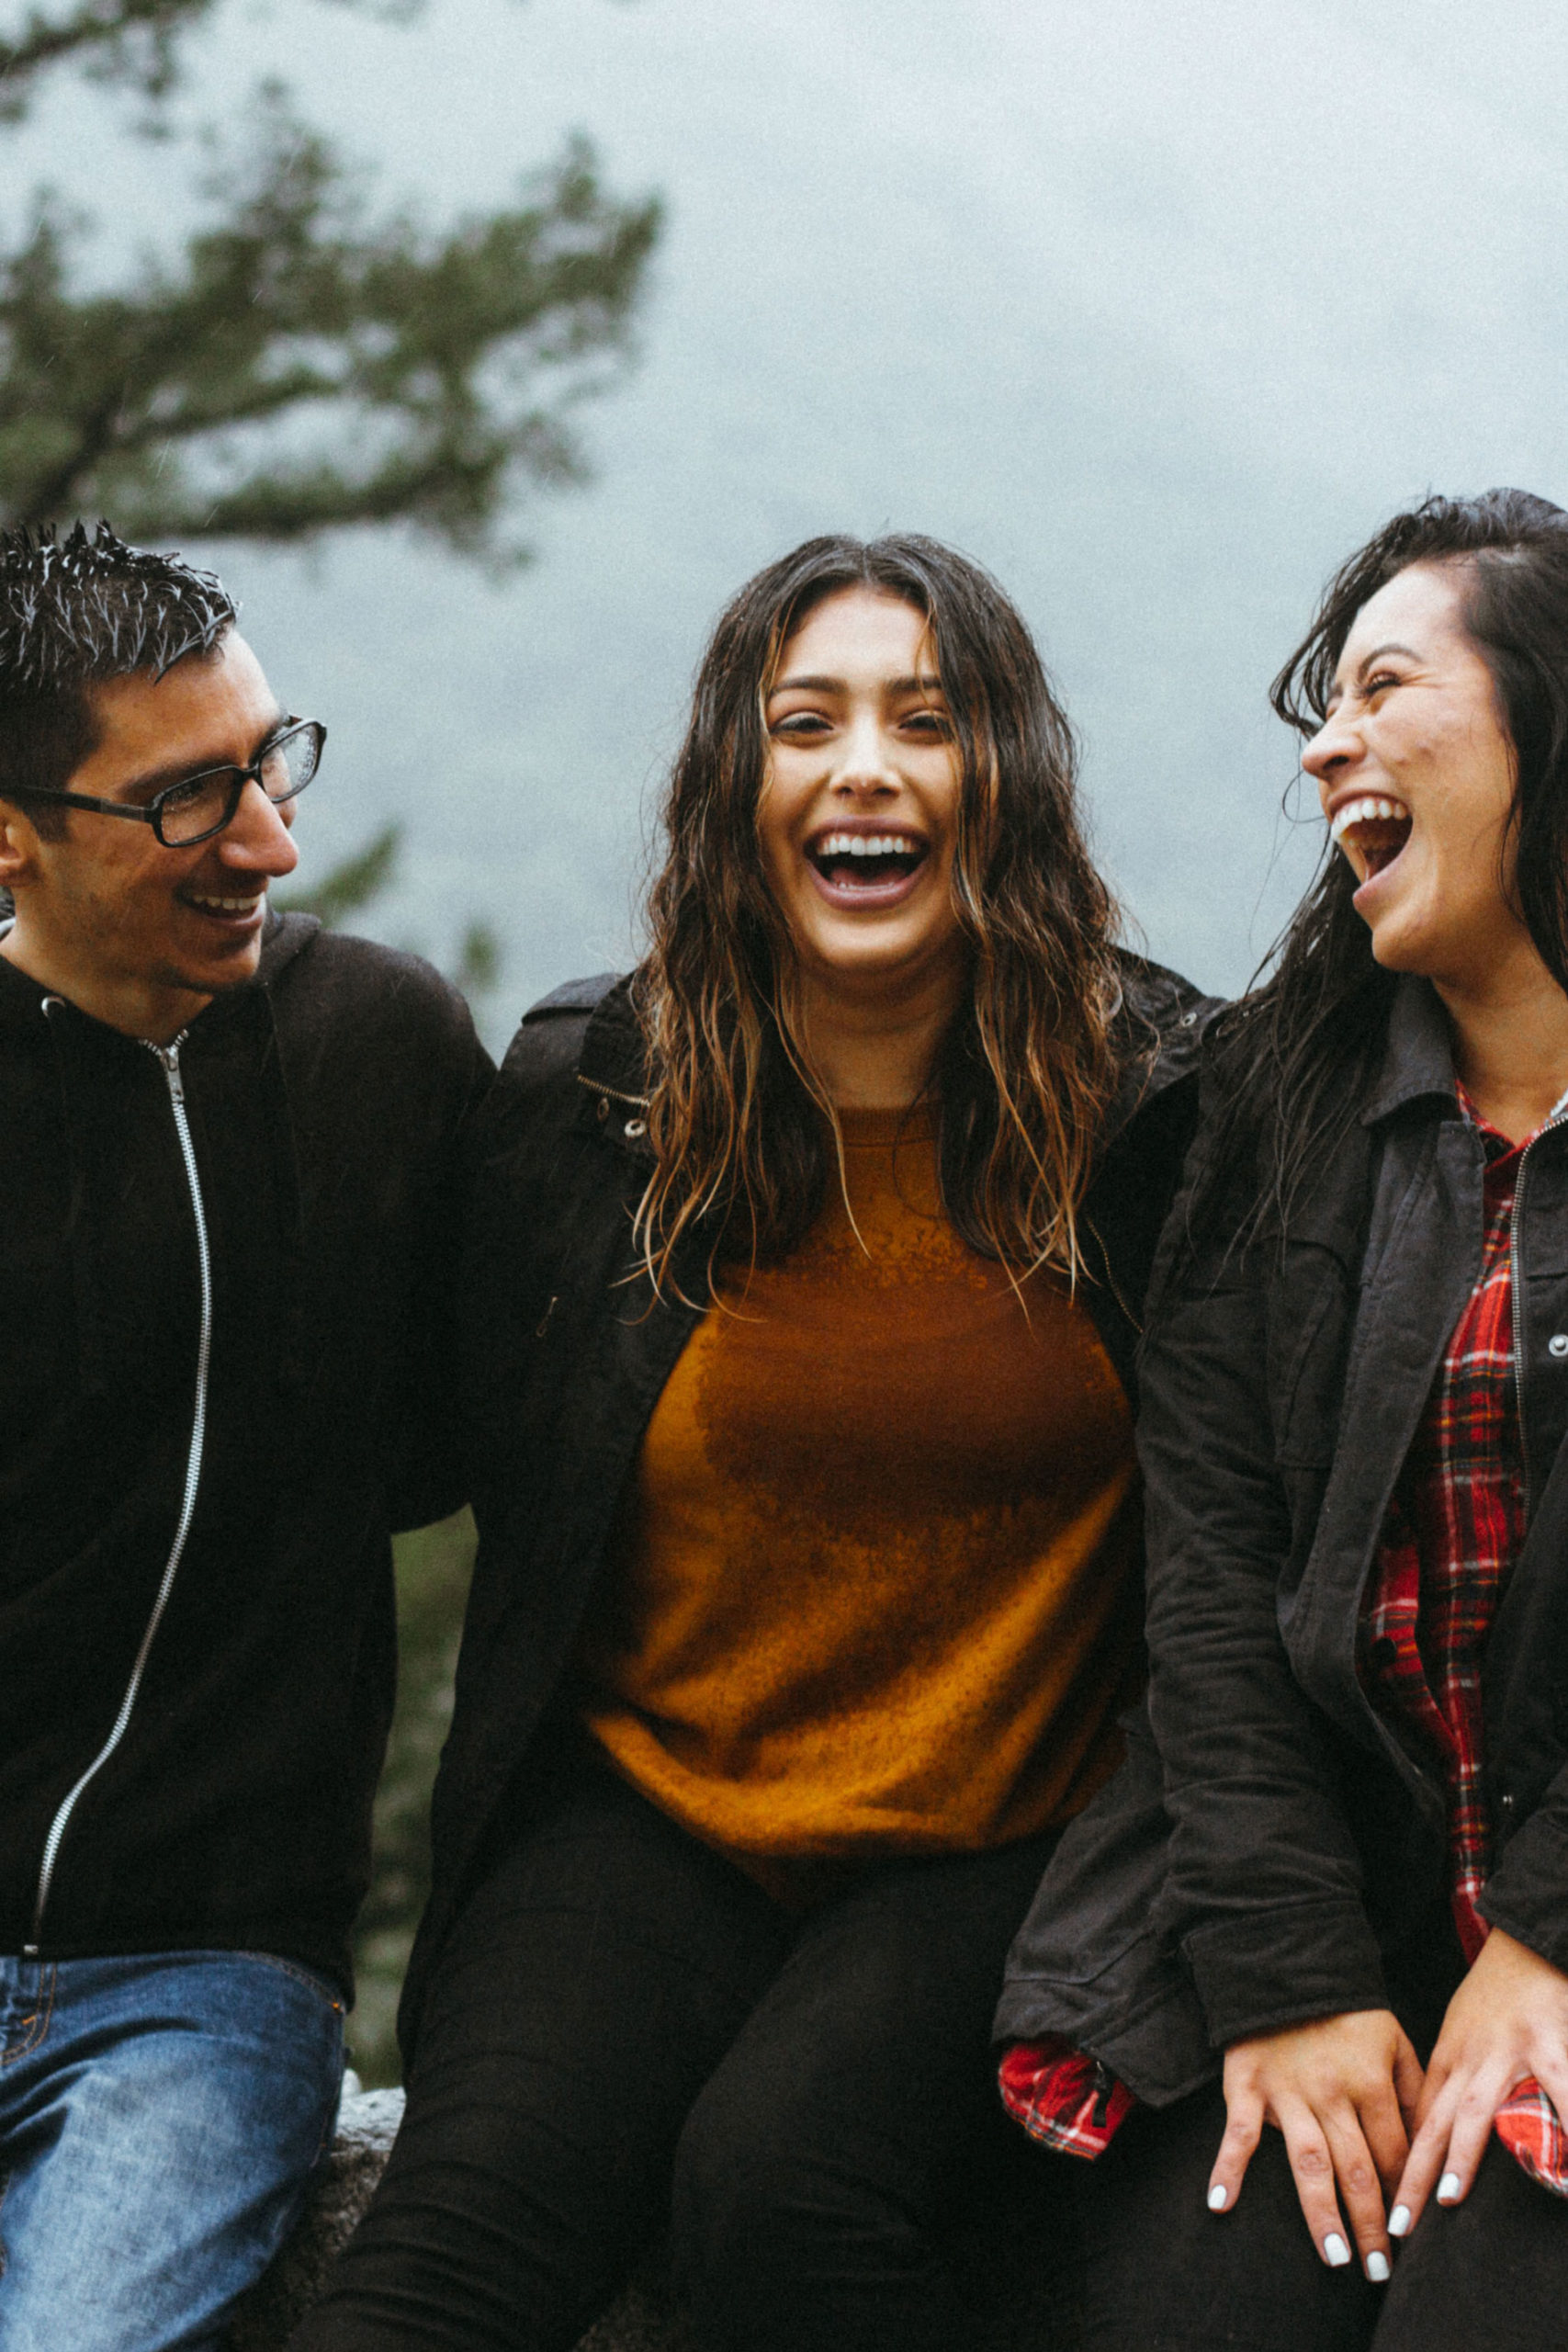 Closeup of three laughing people.